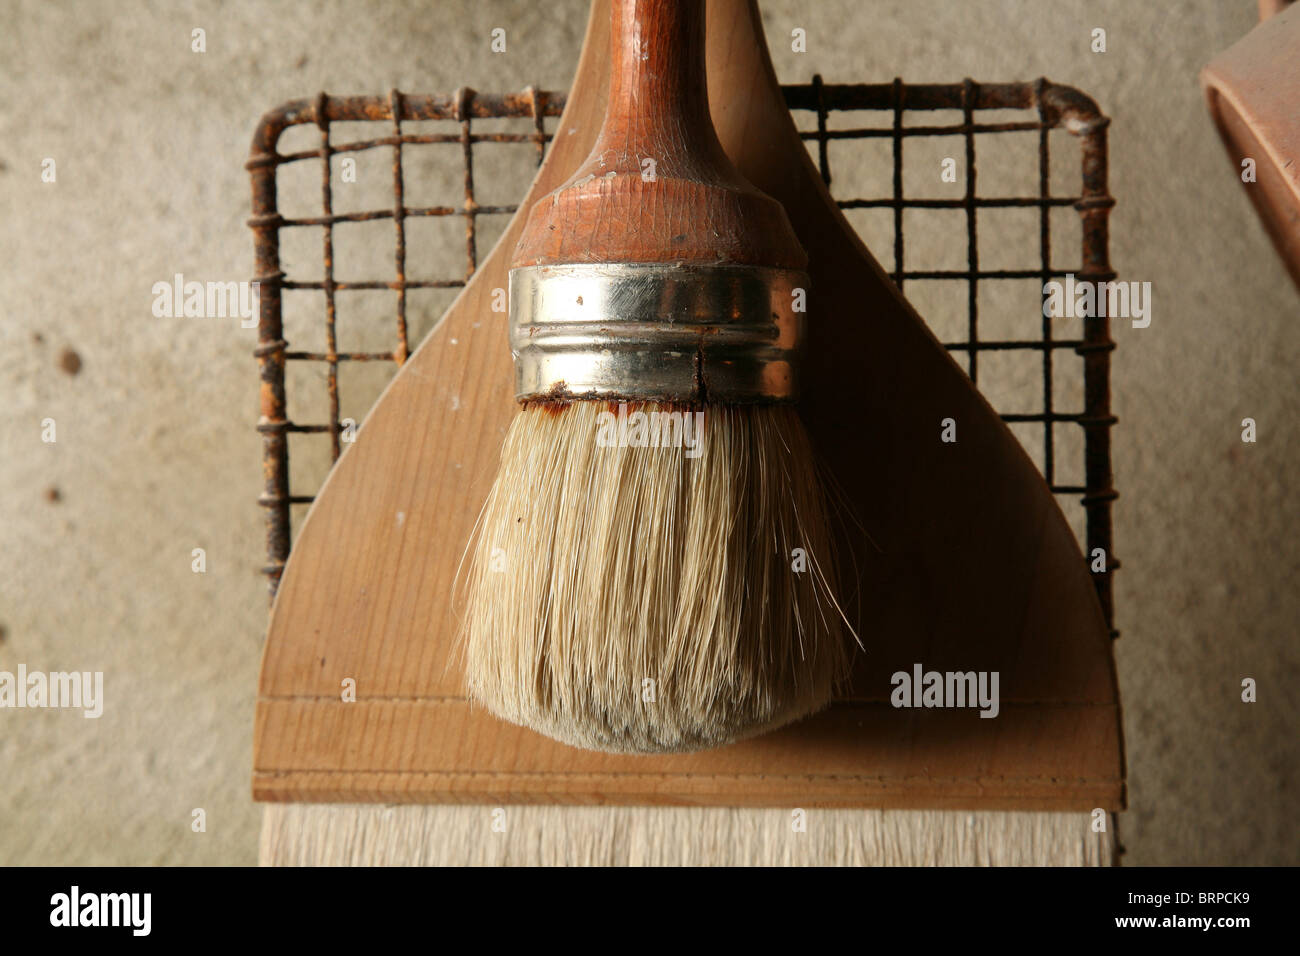 Two brushes in potter's studio on a wire grid background - Stock Image